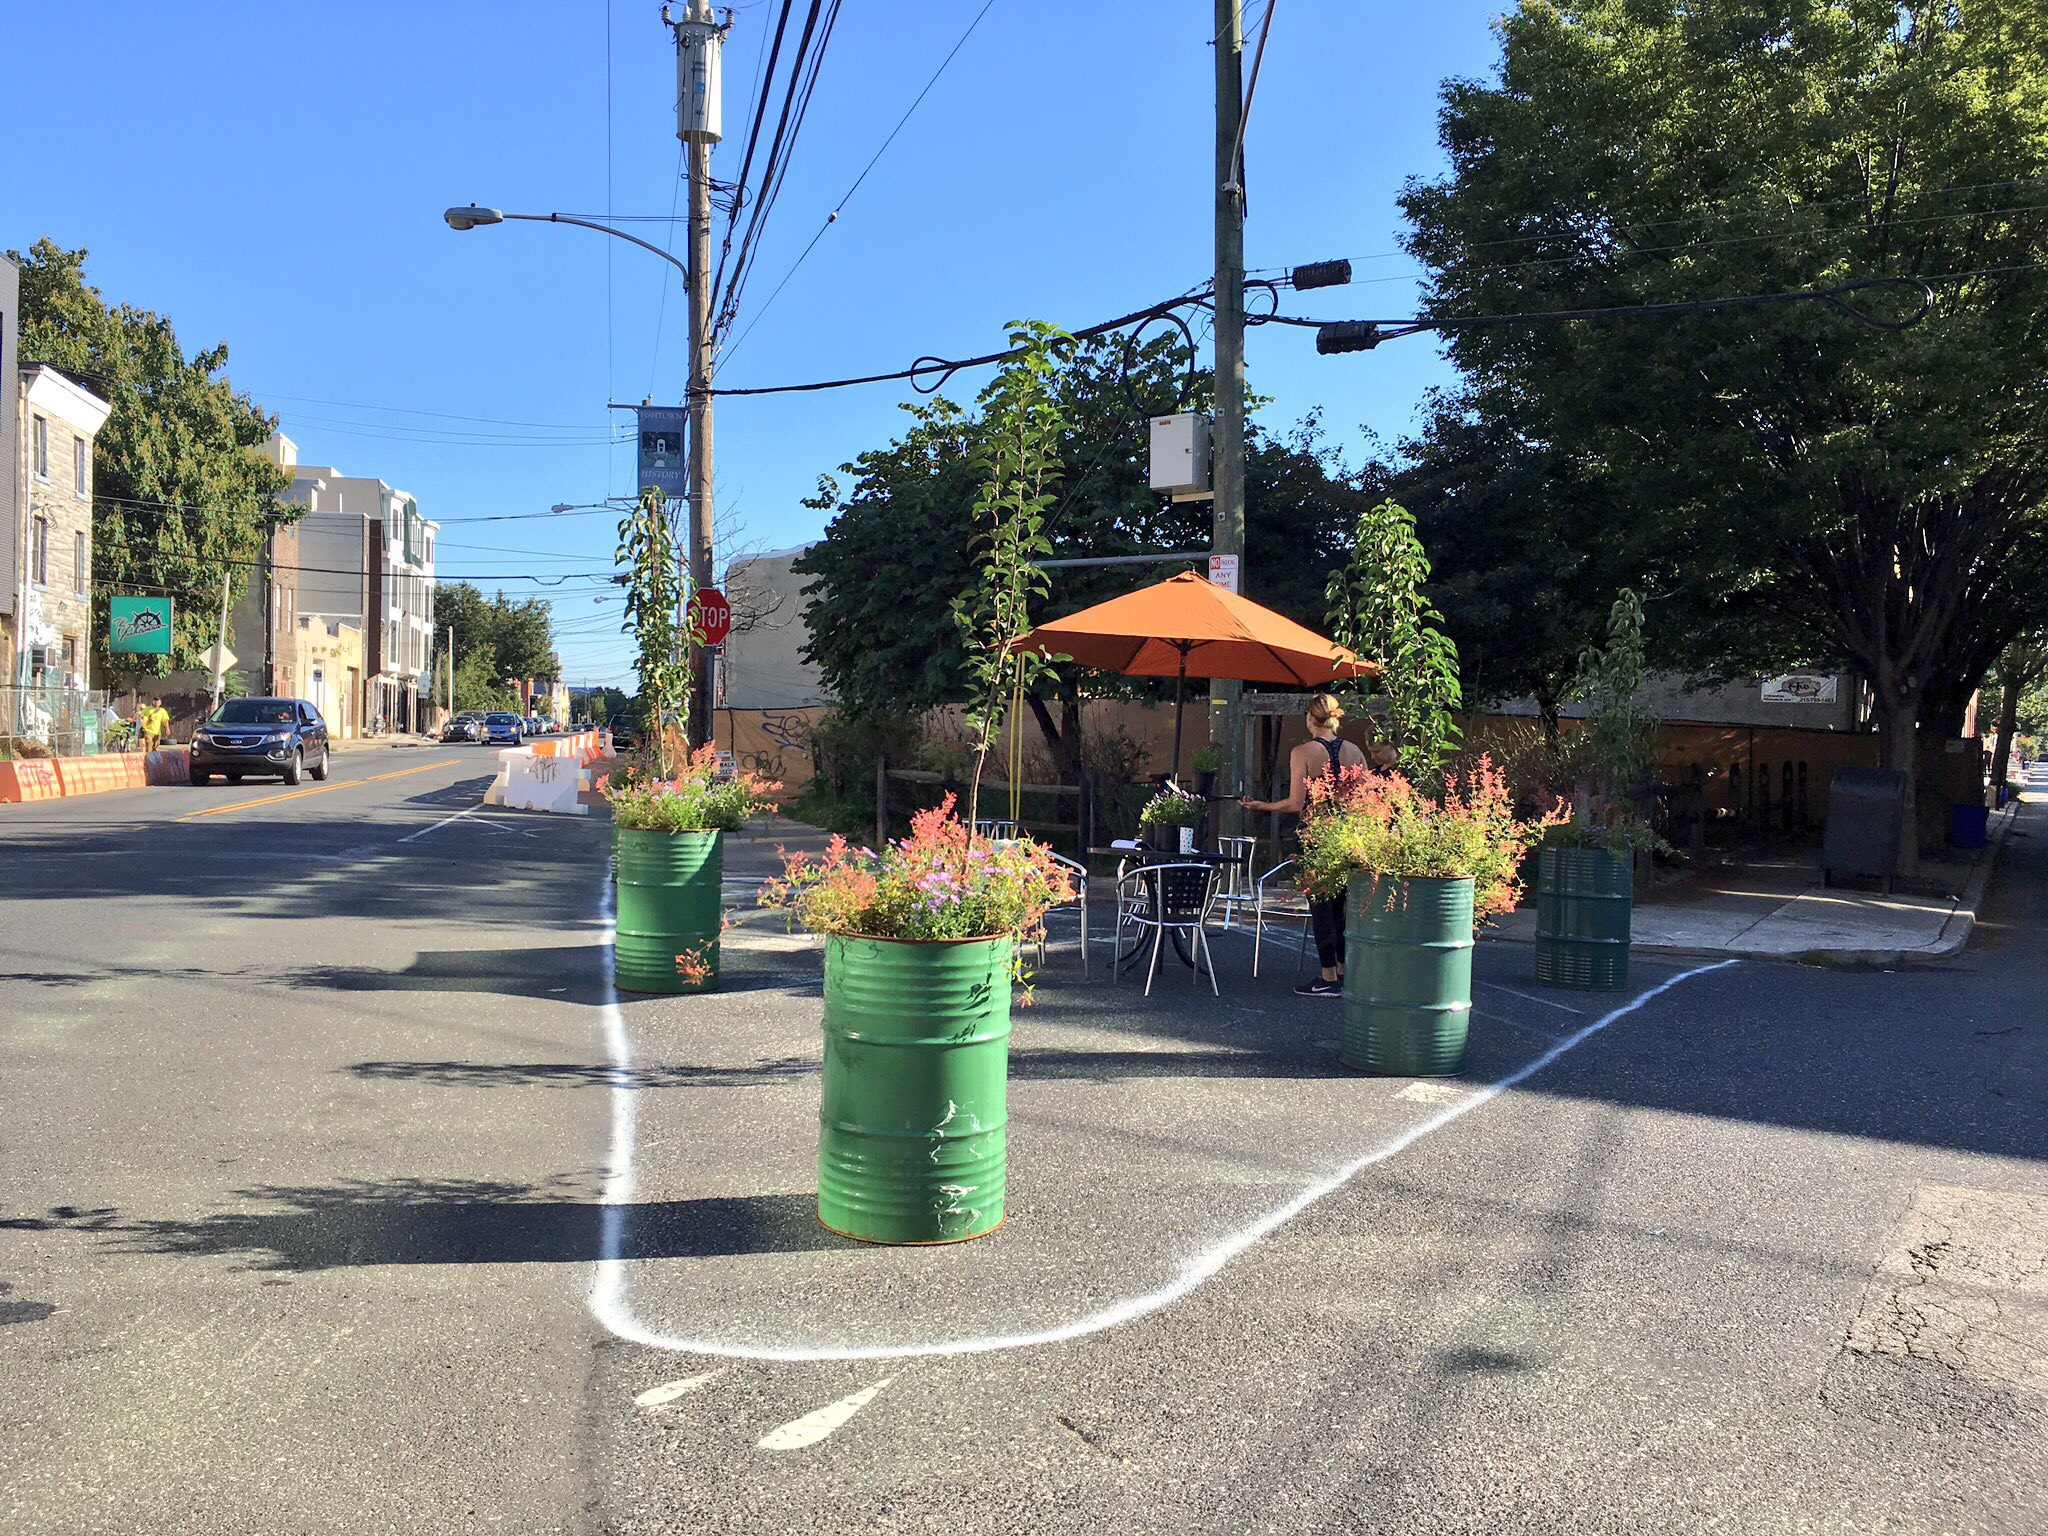 Fishtown Neighbors, Greensgrow, and Johnny Brenda's joined forces at Belgrade and Frankford Ave. to create a pop-up plaza.